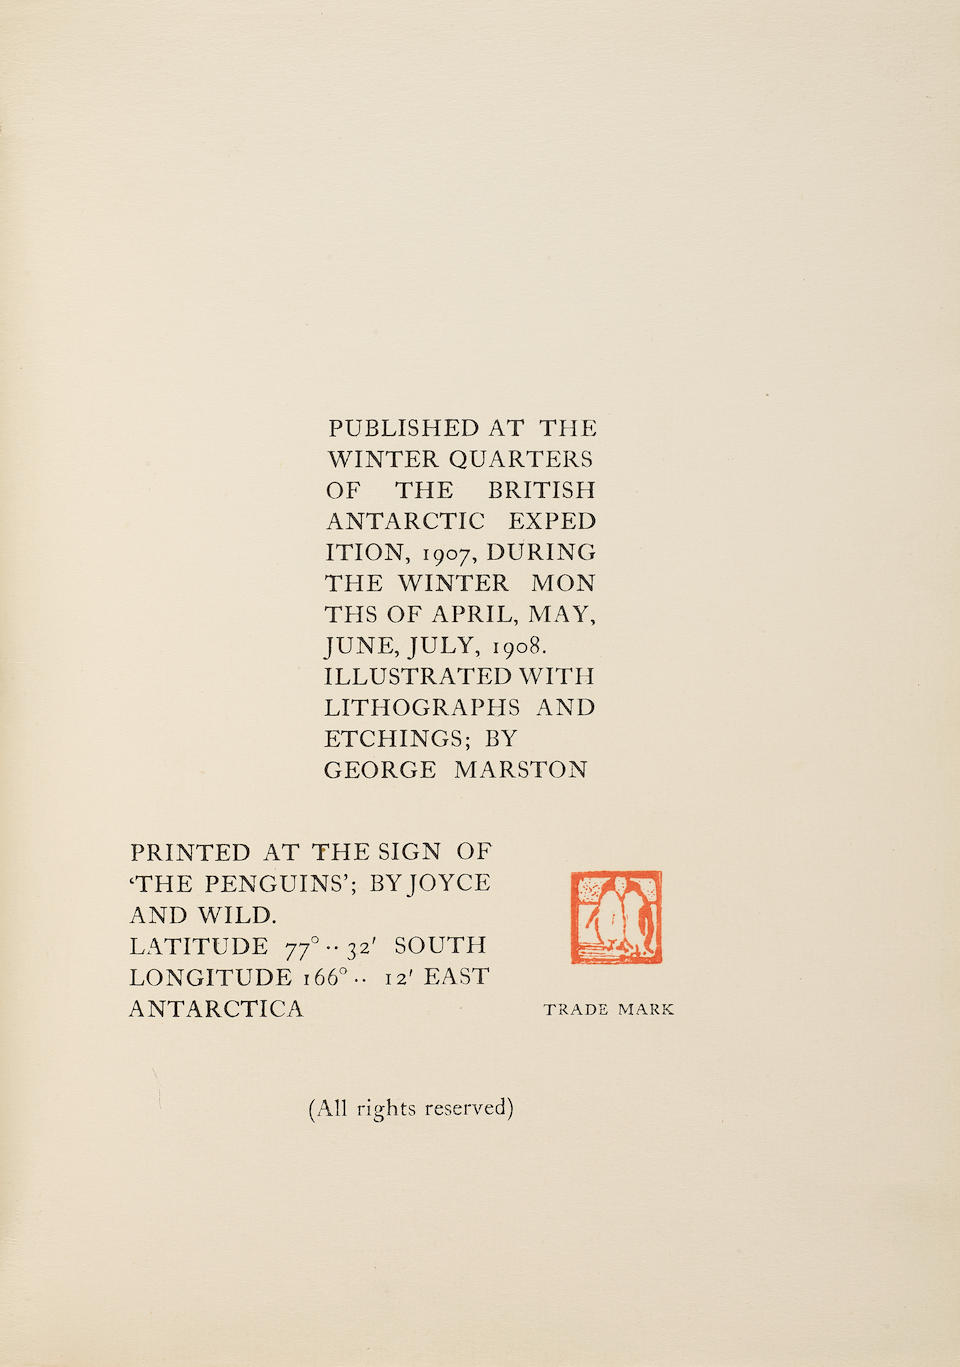 "SHACKLETON, ERNEST. 1874-1922. Aurora Australis. ""Published at the winter quarters of the British Antarctic Expedition During the Winter Months of April, May, June, July, 1908 ... Printed at the sign of 'The Penguins'; by Joyce and Wild..."" East Antarctica, 1908."